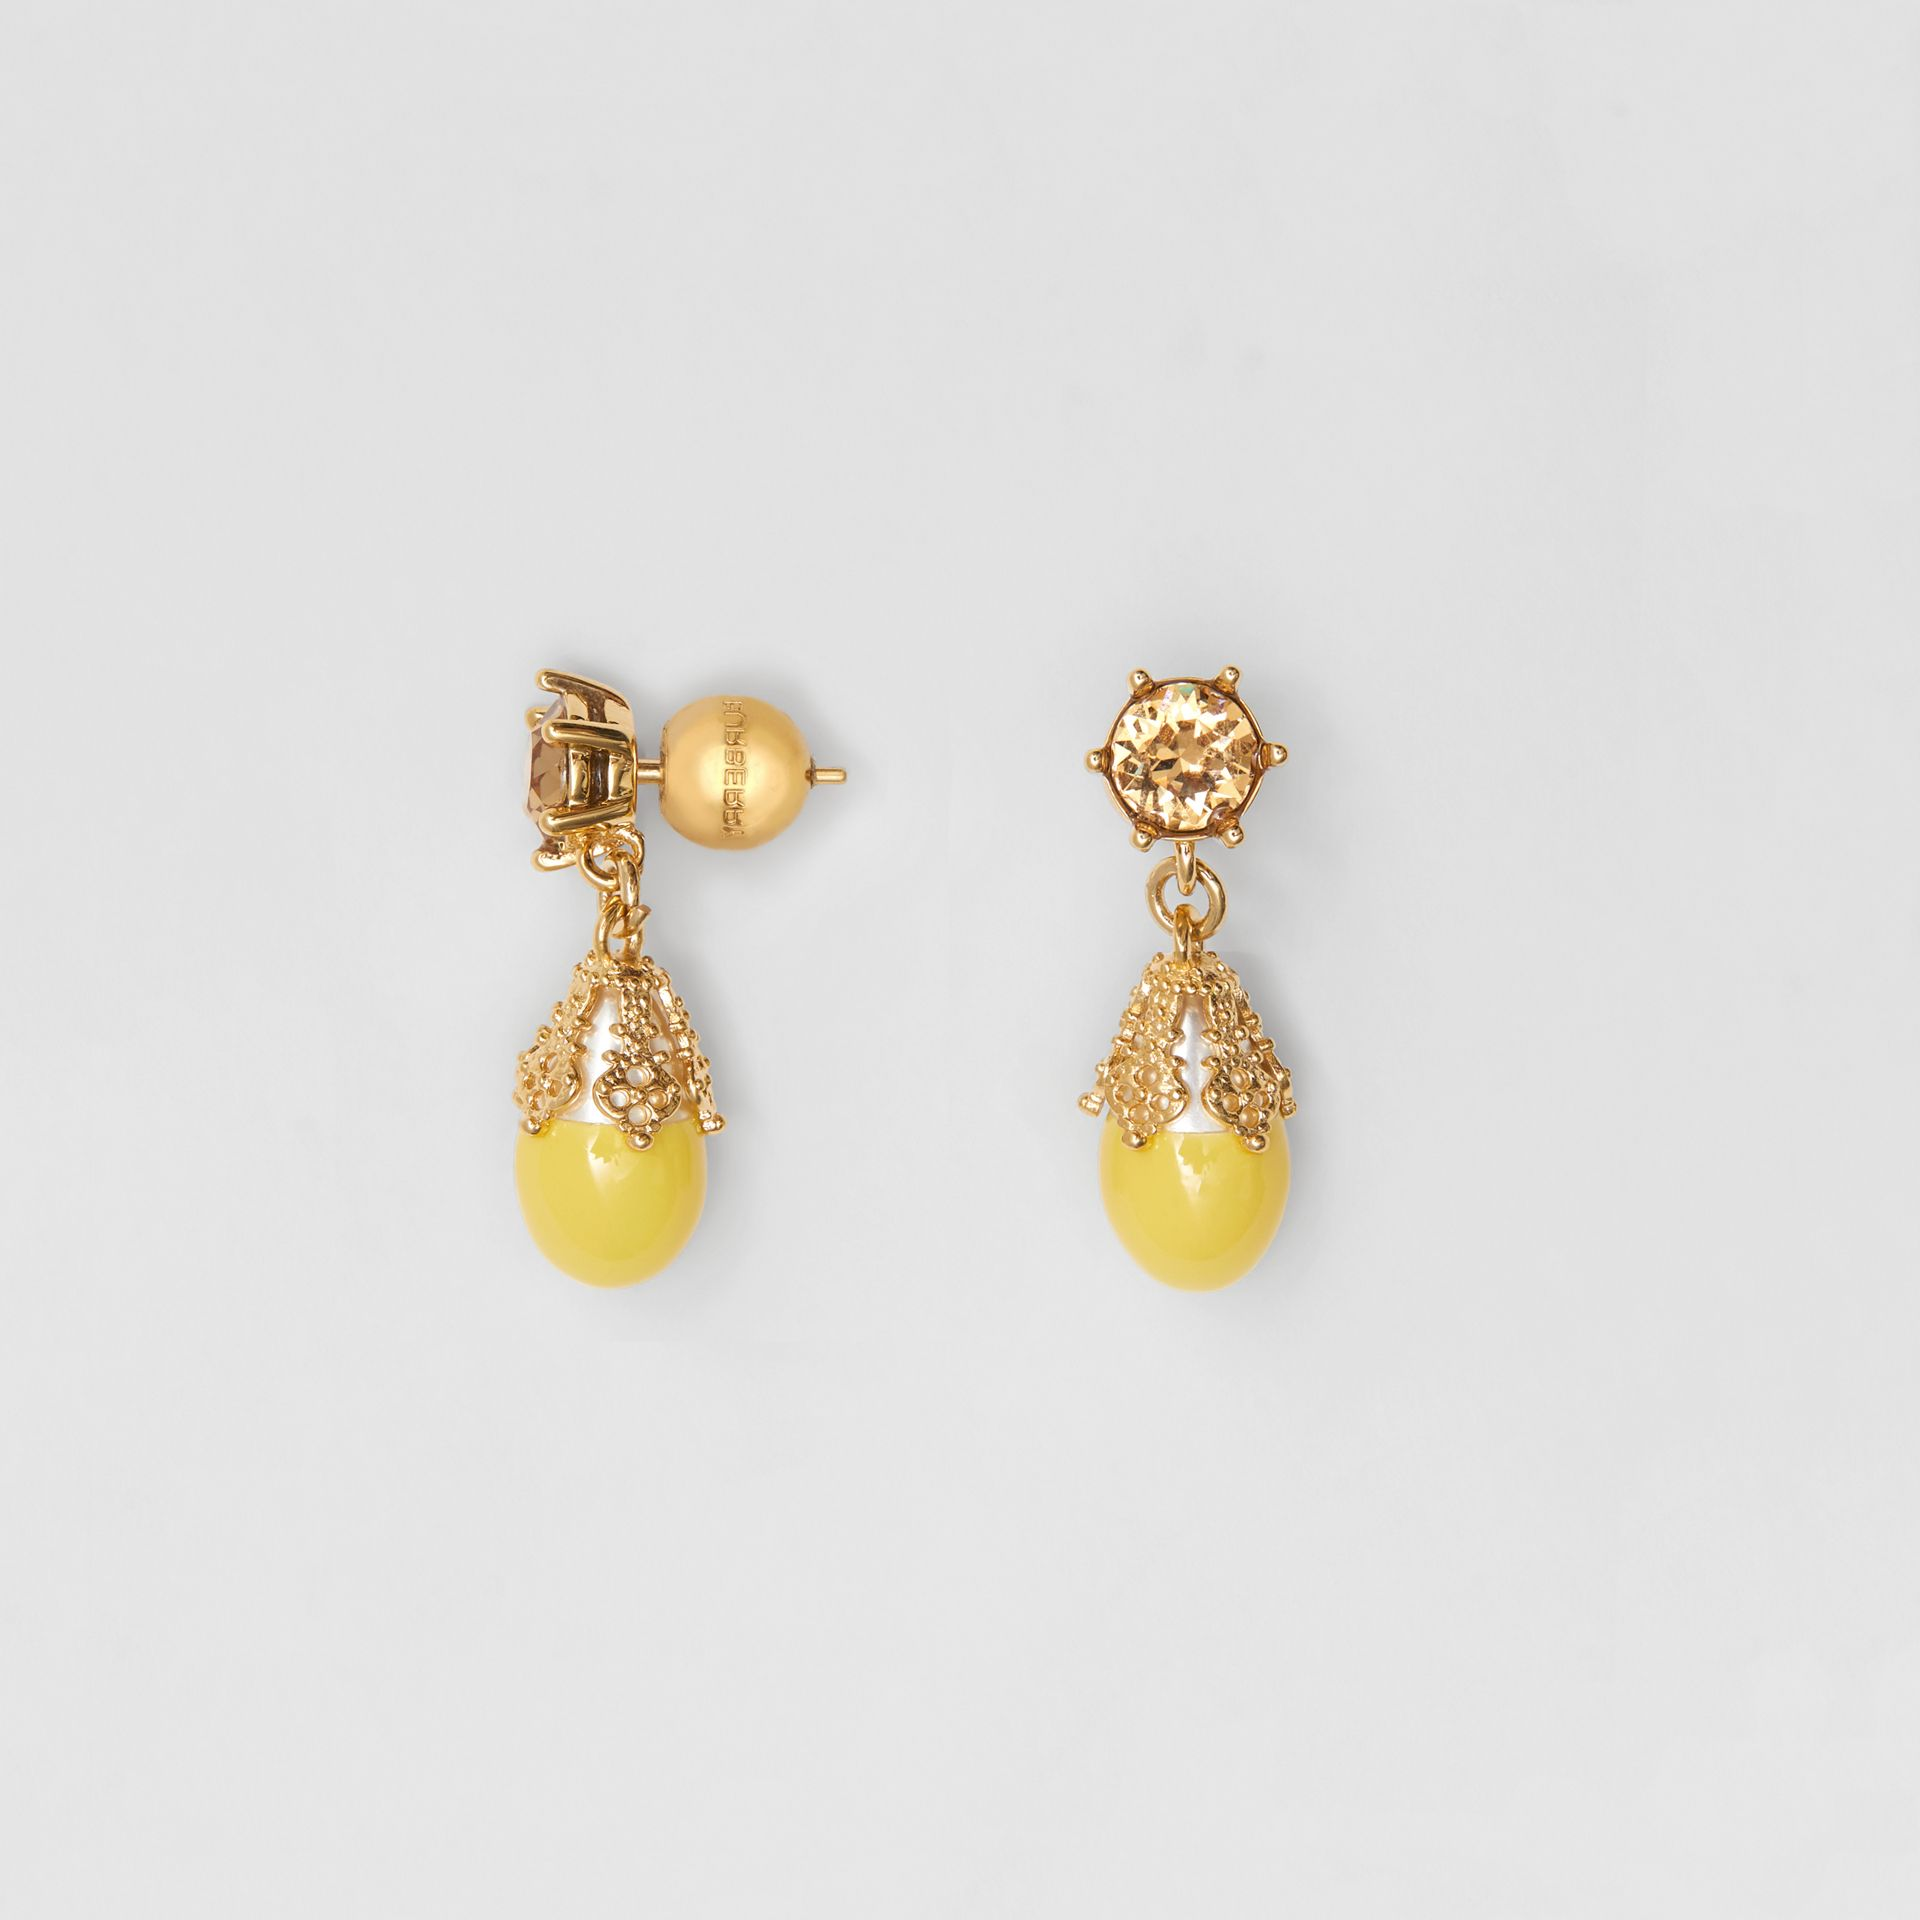 Gold-plated Faux Pearl Charm Earrings in Light Topaz/light - Women | Burberry Australia - gallery image 3